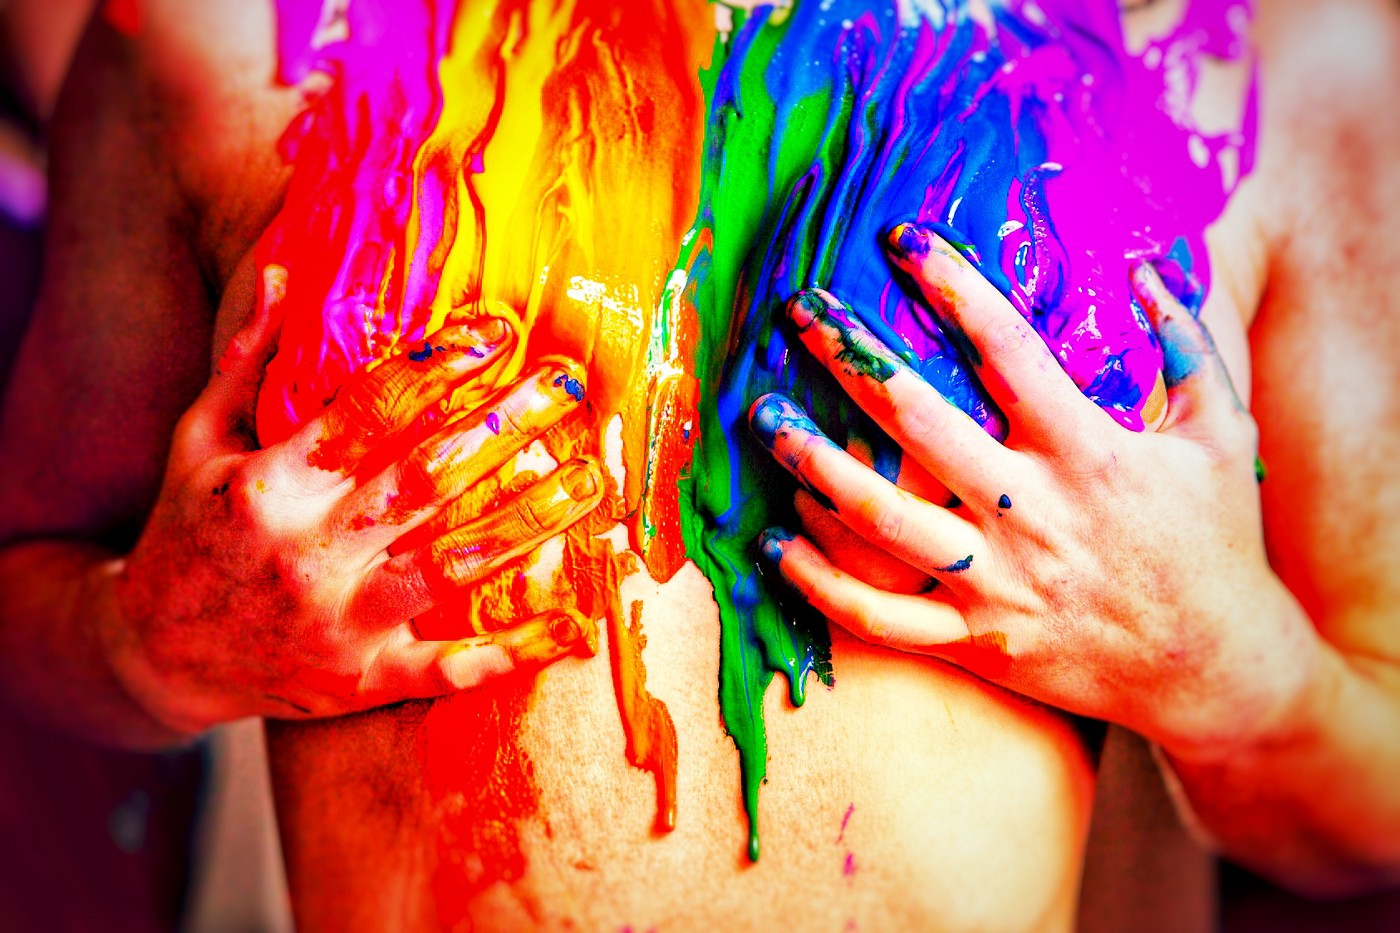 rainbow colors of paint slathered across the front of a naked person holding their breasts. Unknown if they are male or female